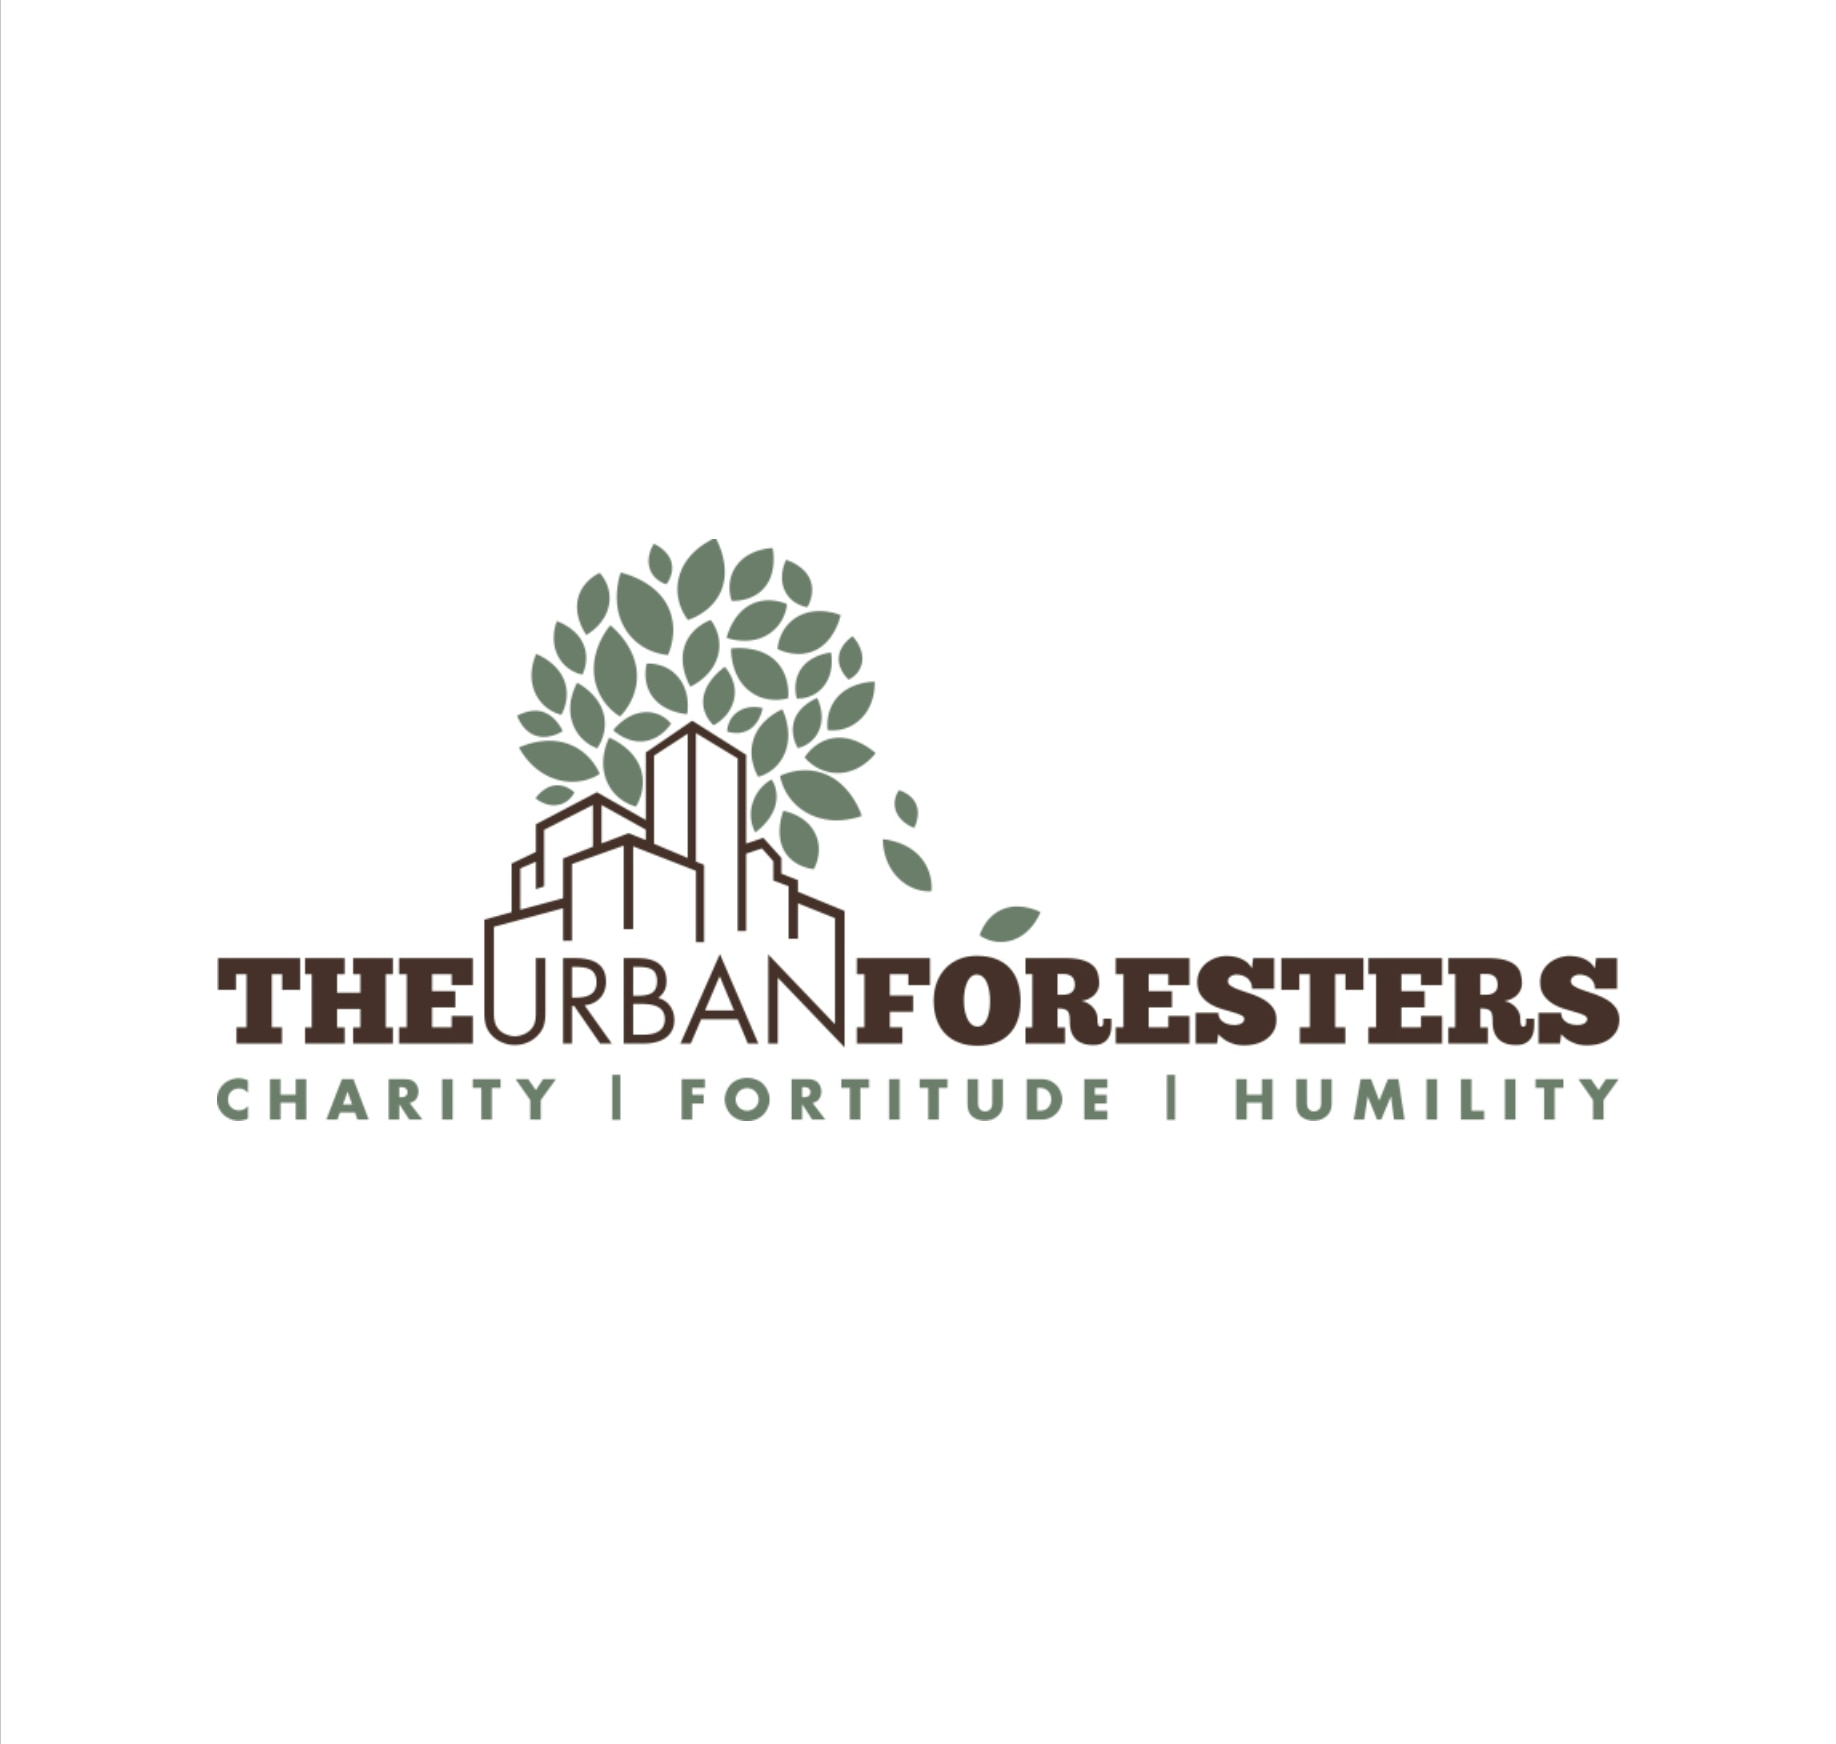 The Urban Foresters logo